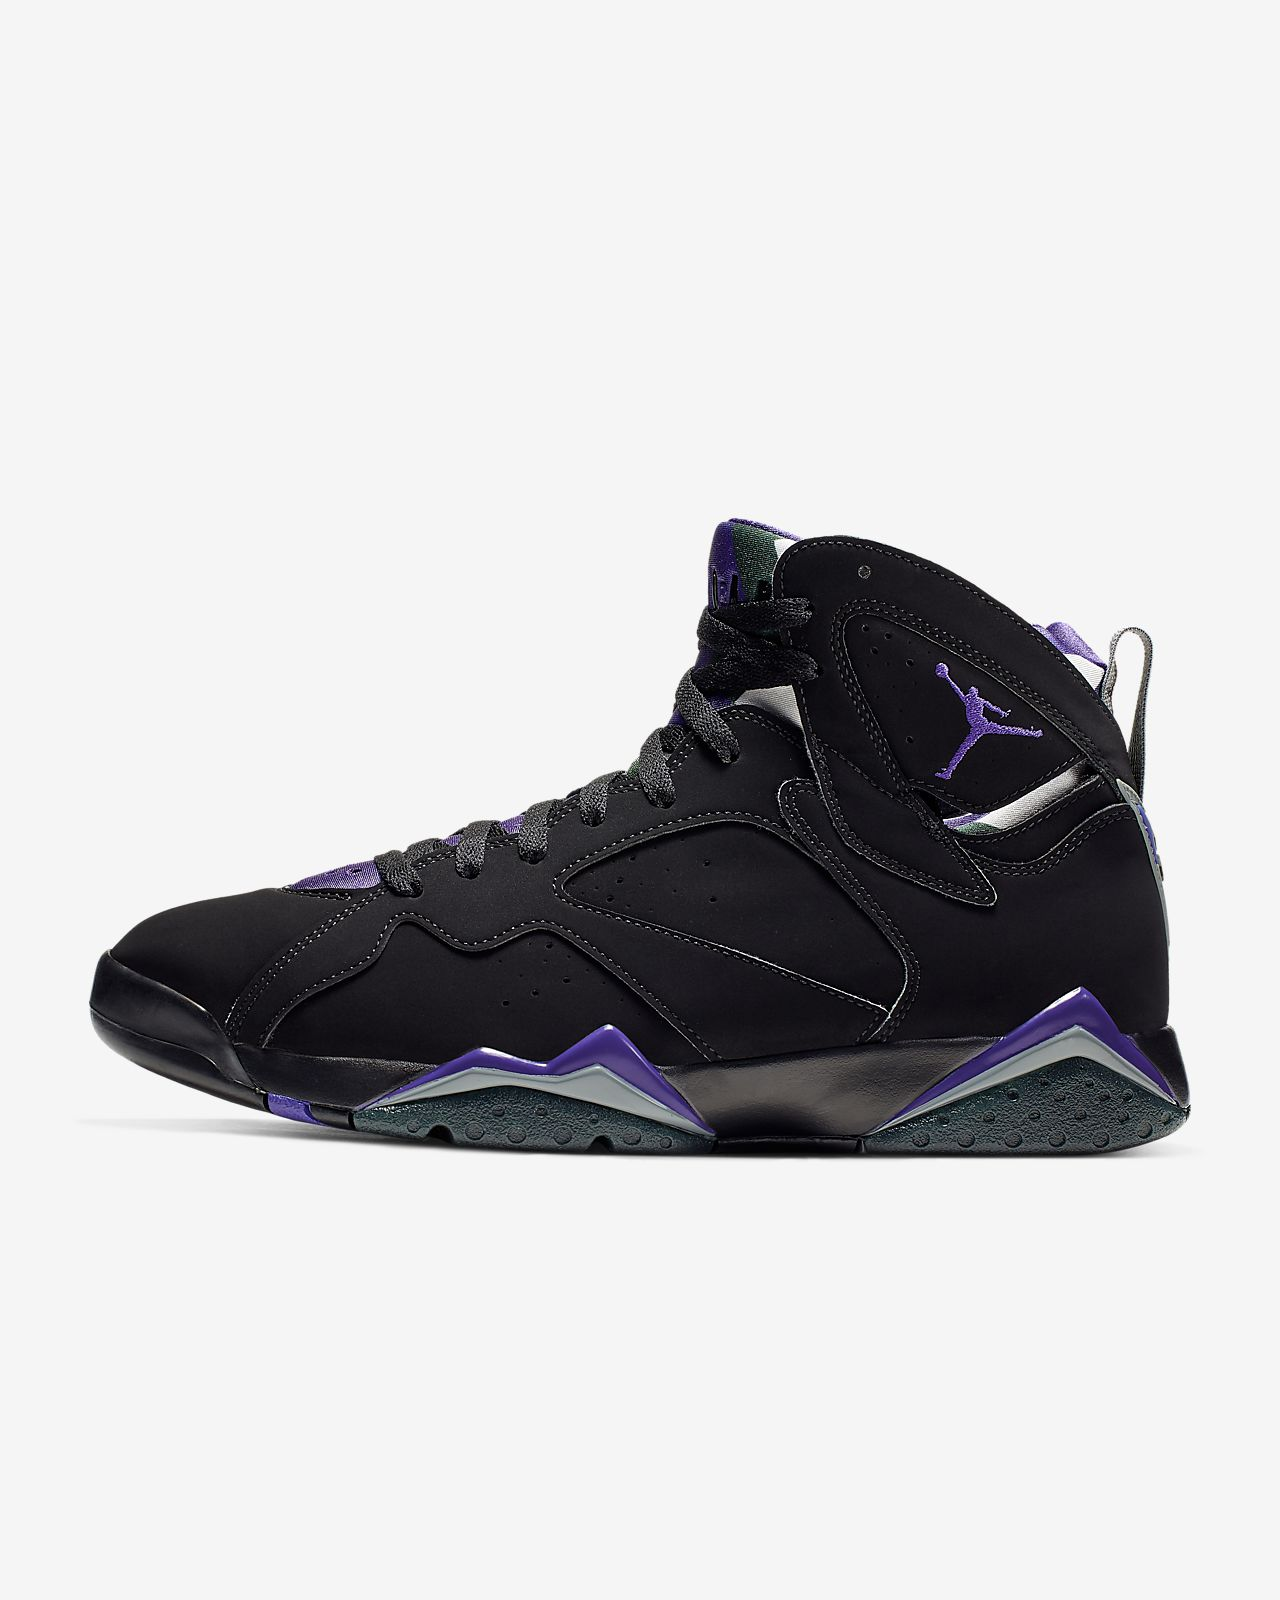 new product f7883 e93e7 Air Jordan 7 Retro